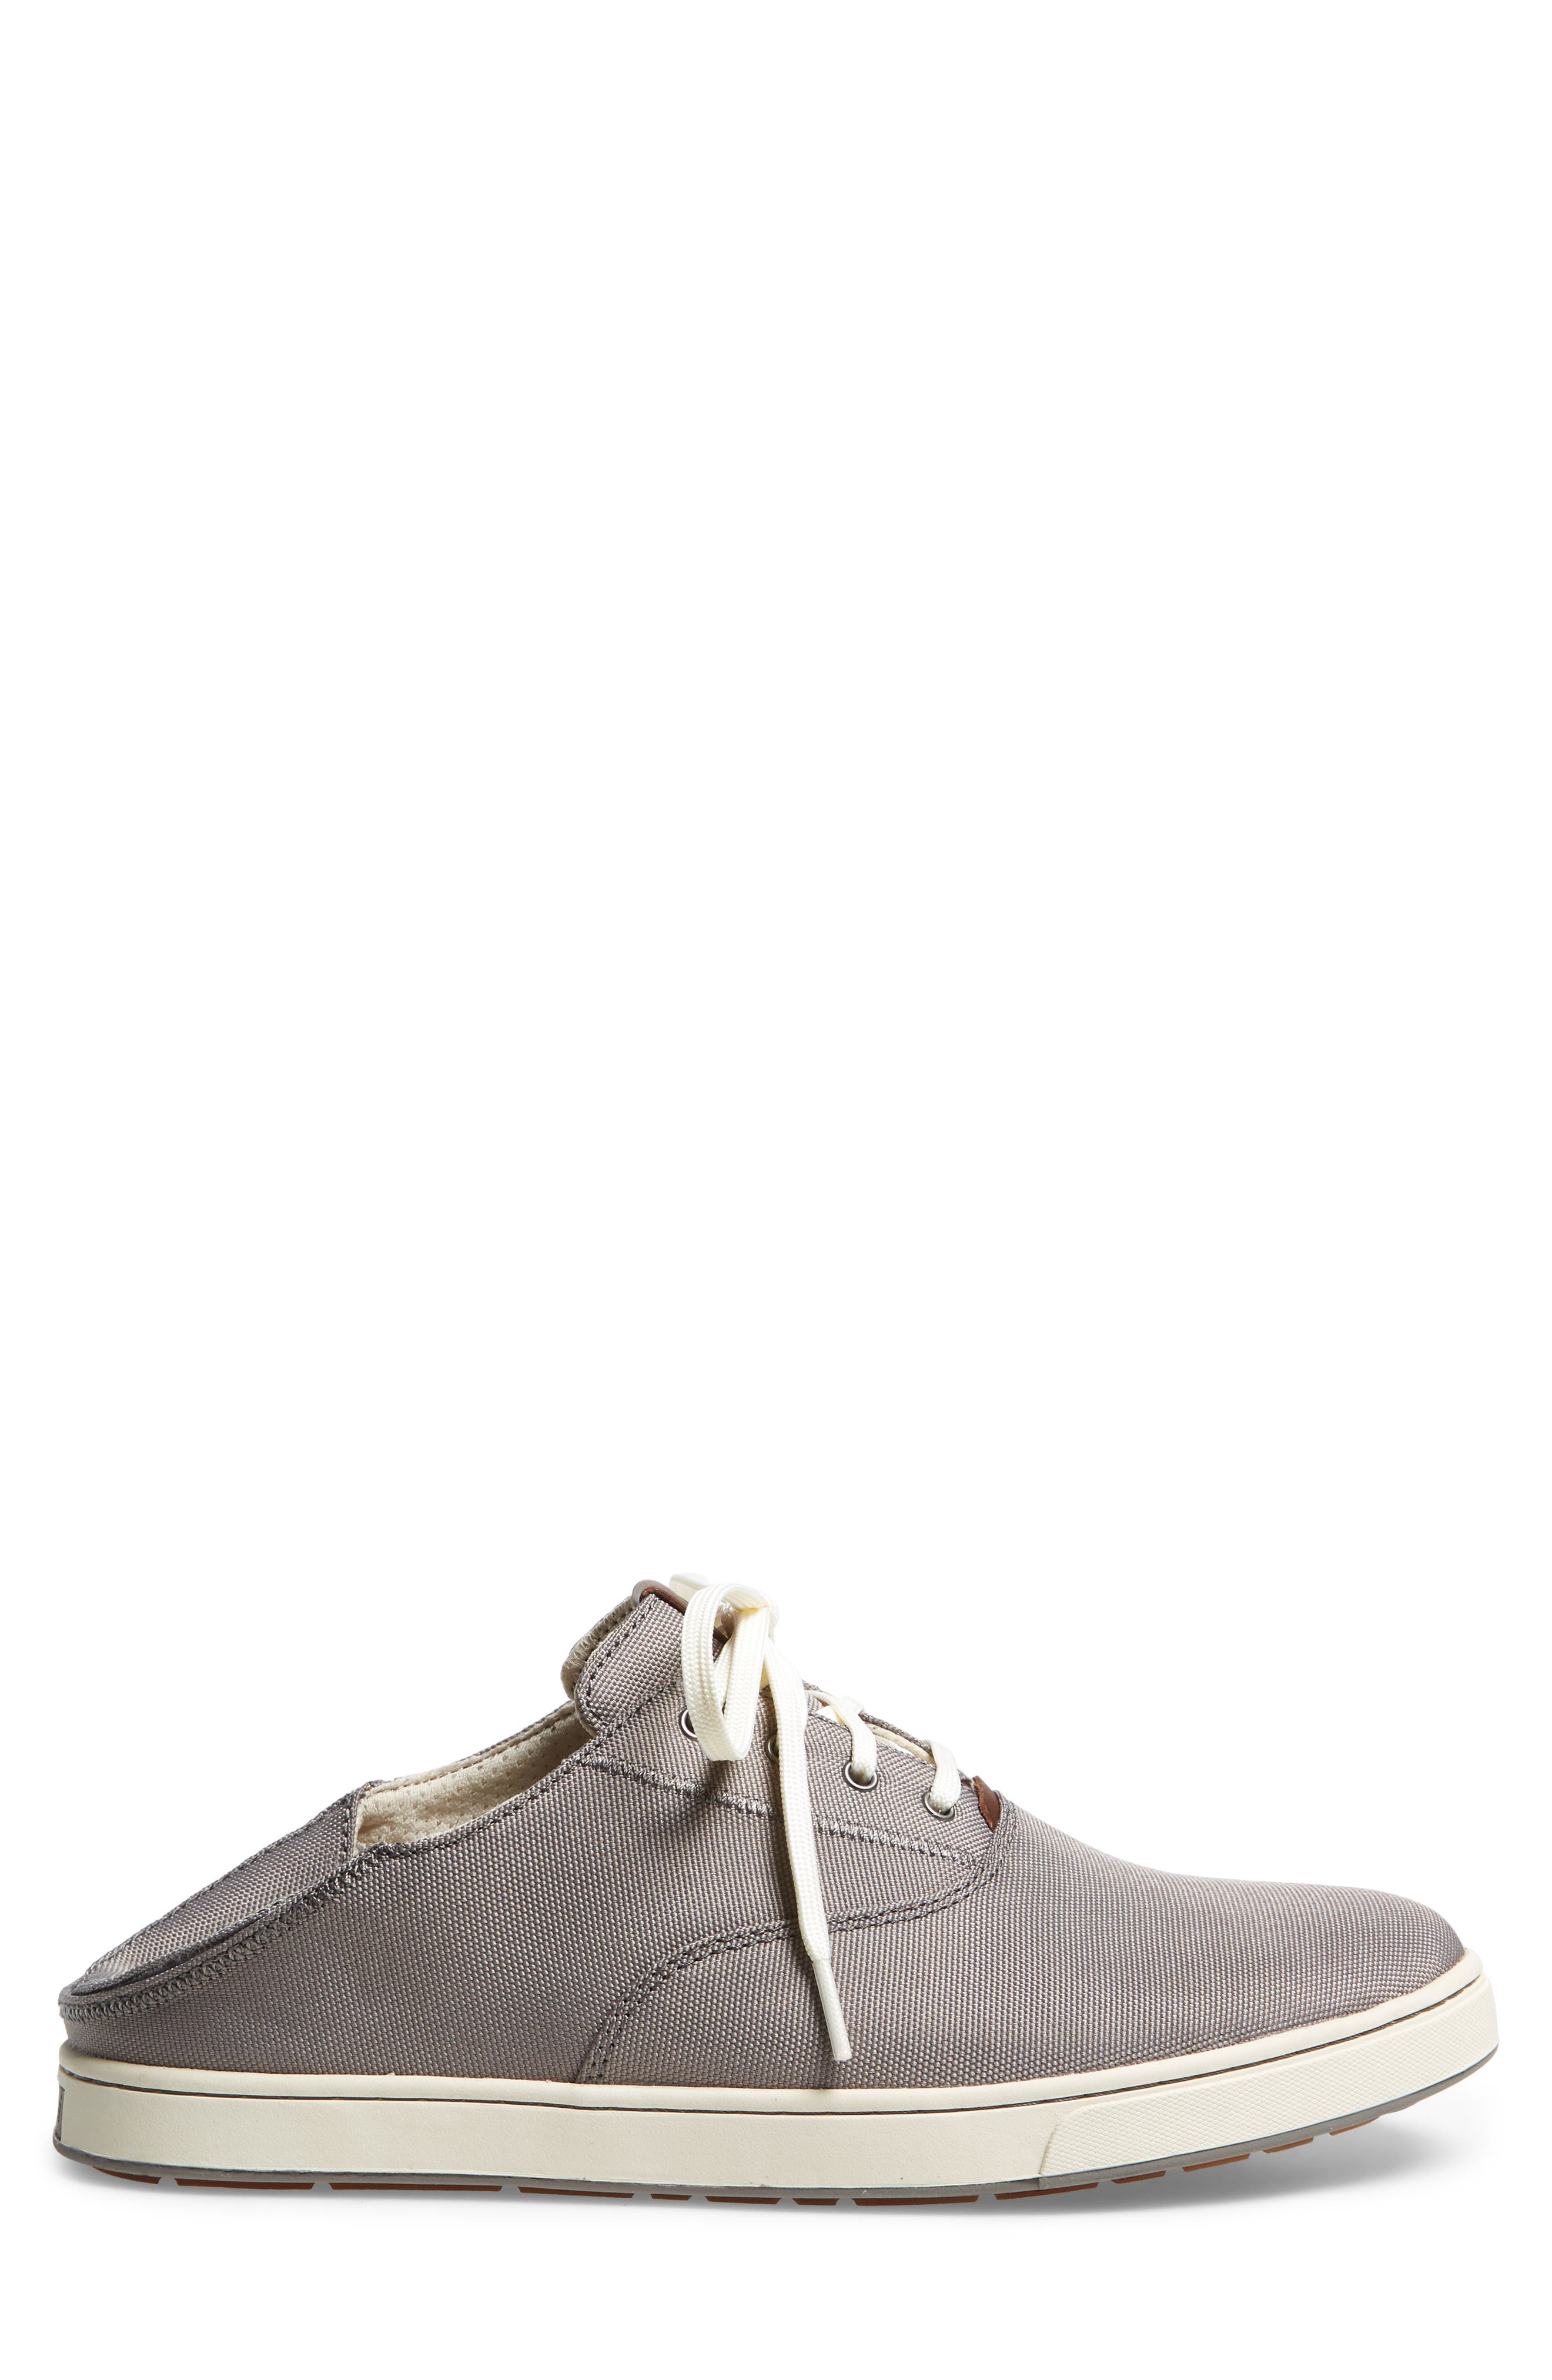 Kahu Collapsible Lace-Up Sneaker,                             Alternate thumbnail 4, color,                             055